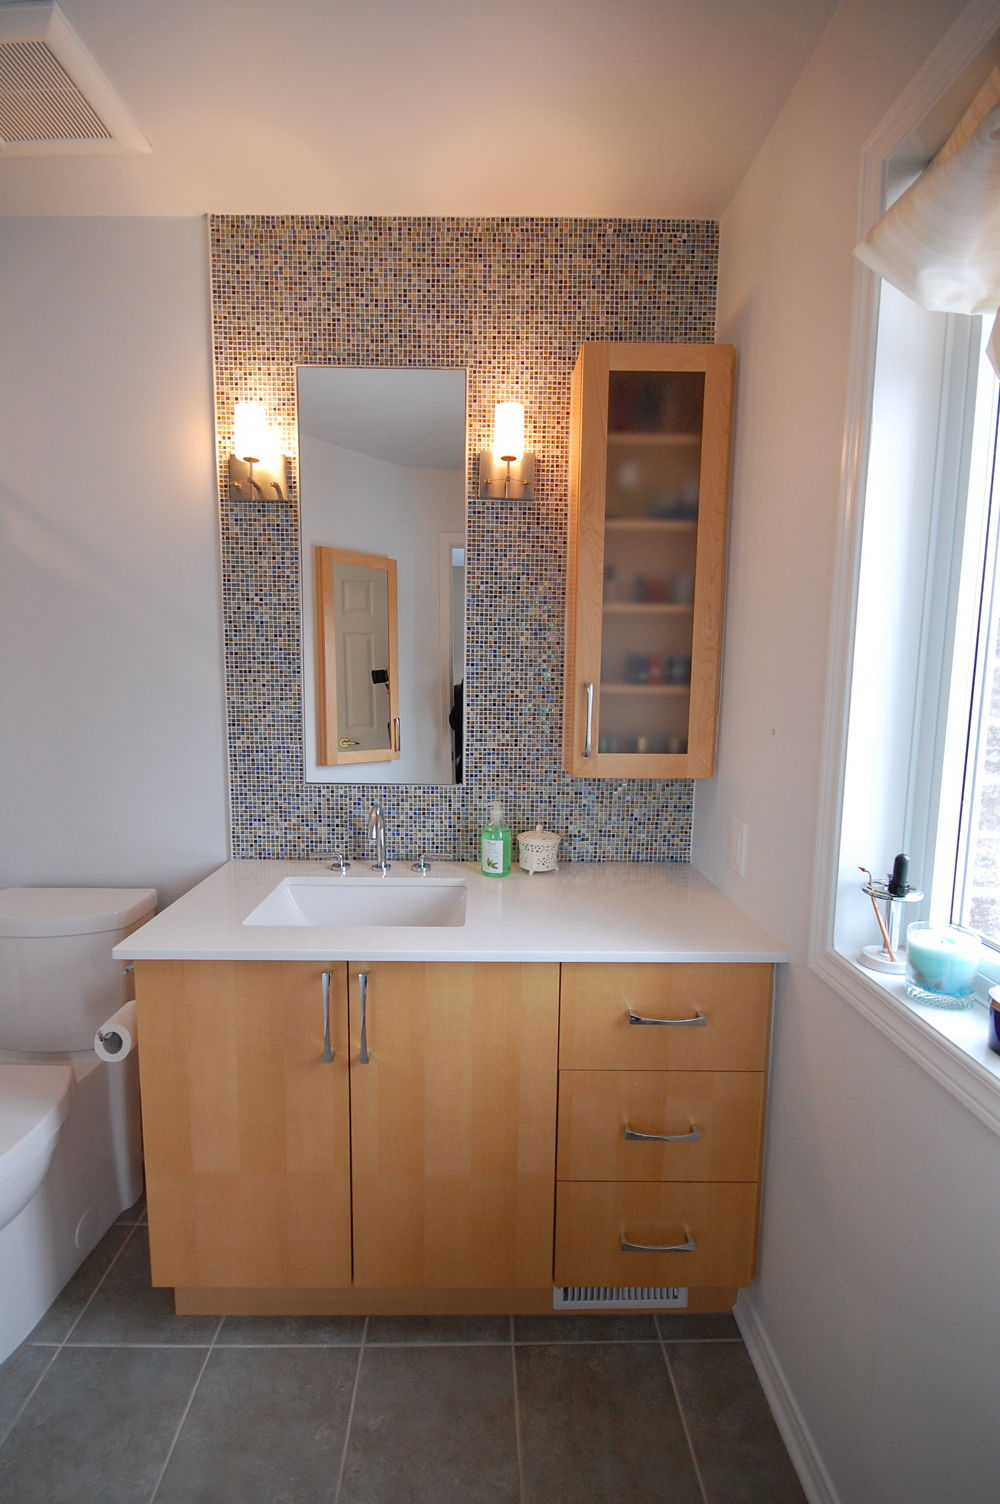 Mosaic tile kitchens and bathrooms first for First bathrooms